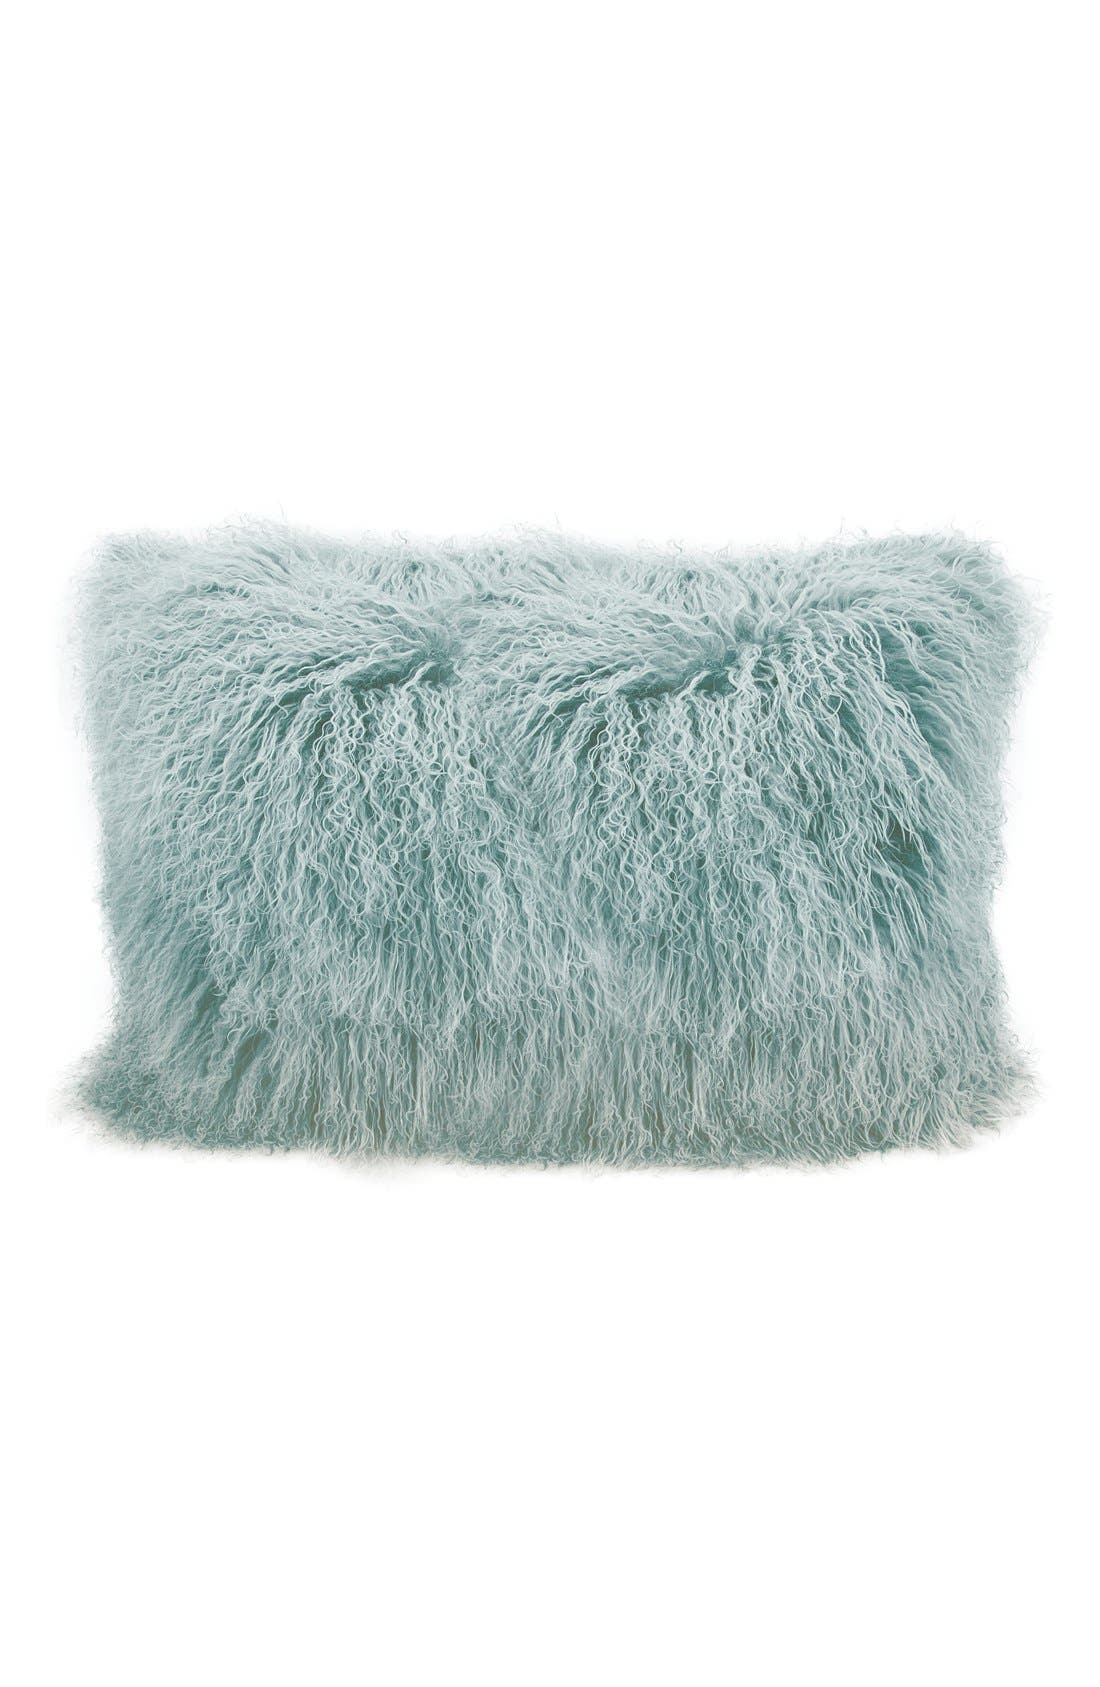 Alternate Image 1 Selected - Mina Victory Genuine Tibetan Shearling Pillow